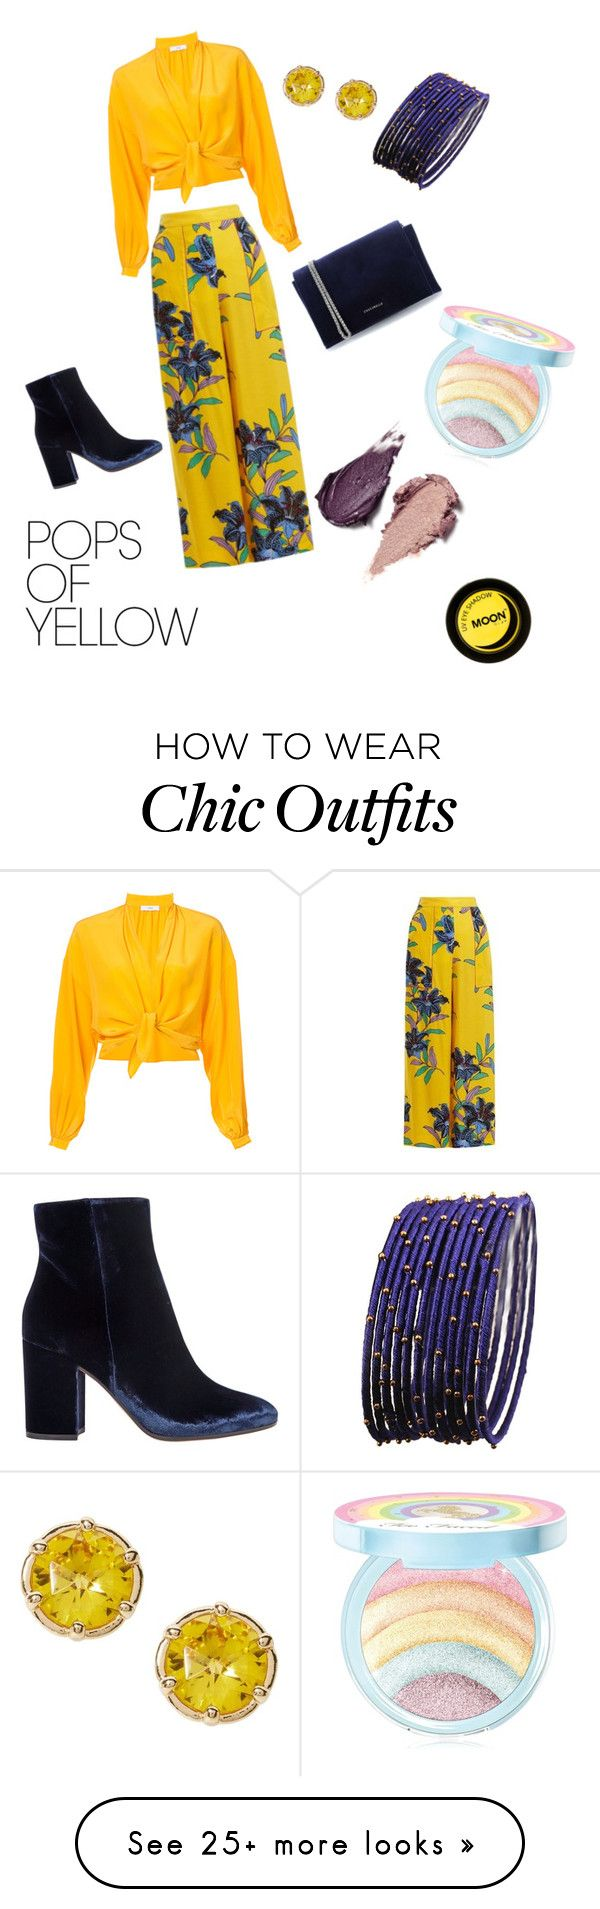 """""""baha chic"""" by mylestanzer on Polyvore featuring Tome, Diane Von Furstenberg, Gianvito Rossi, Coccinelle, Too Faced Cosmetics, Rituel de Fille, PopsOfYellow and NYFWYellow"""